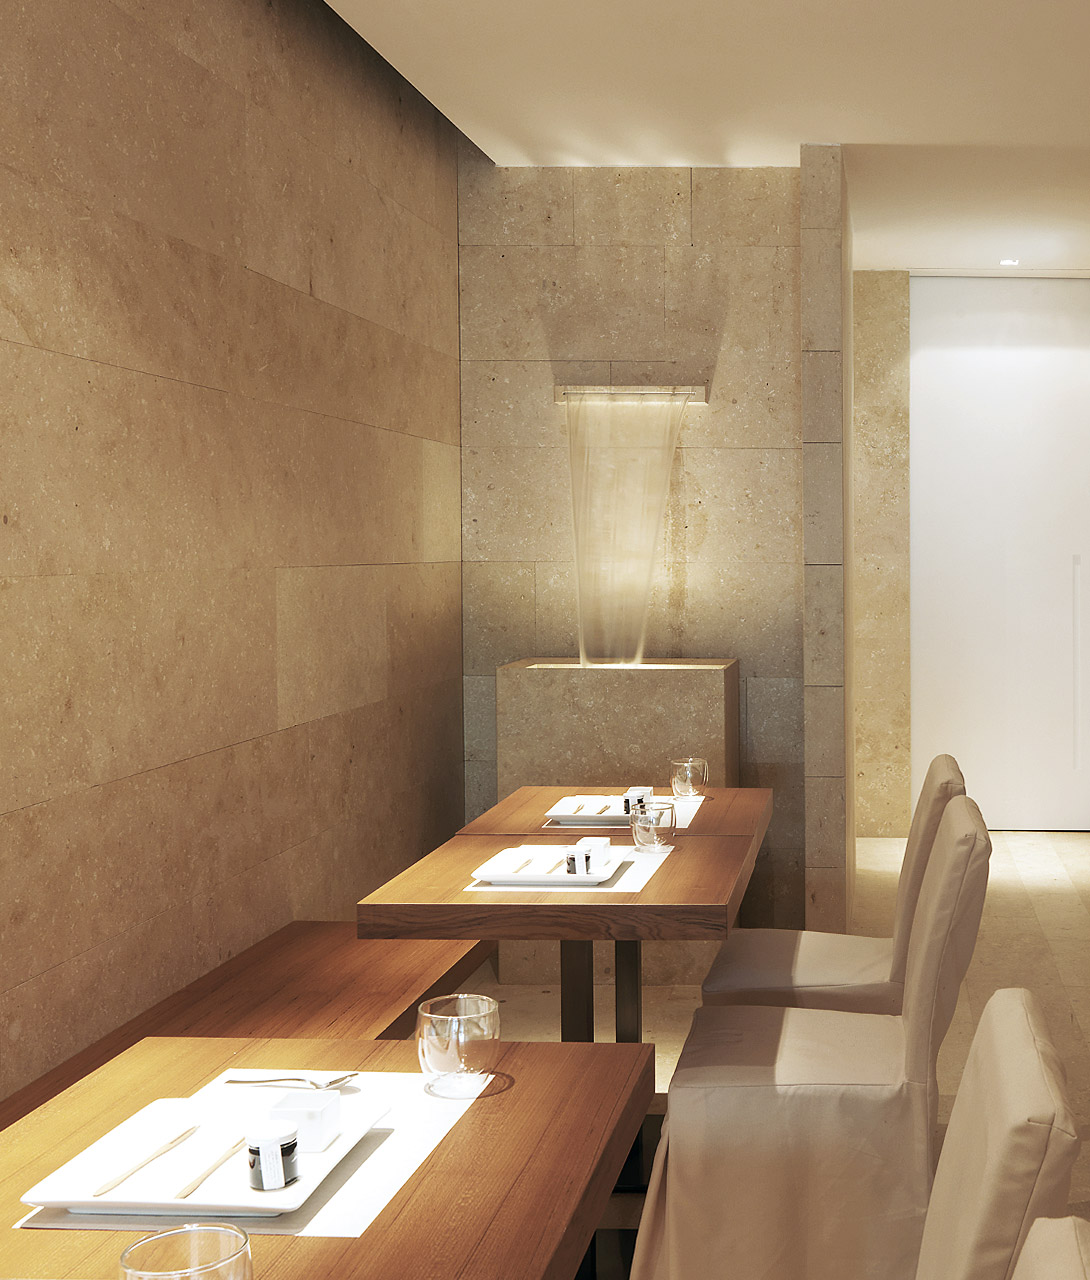 C Hotel And Spa Dining Restaurant Interior K 02 X2